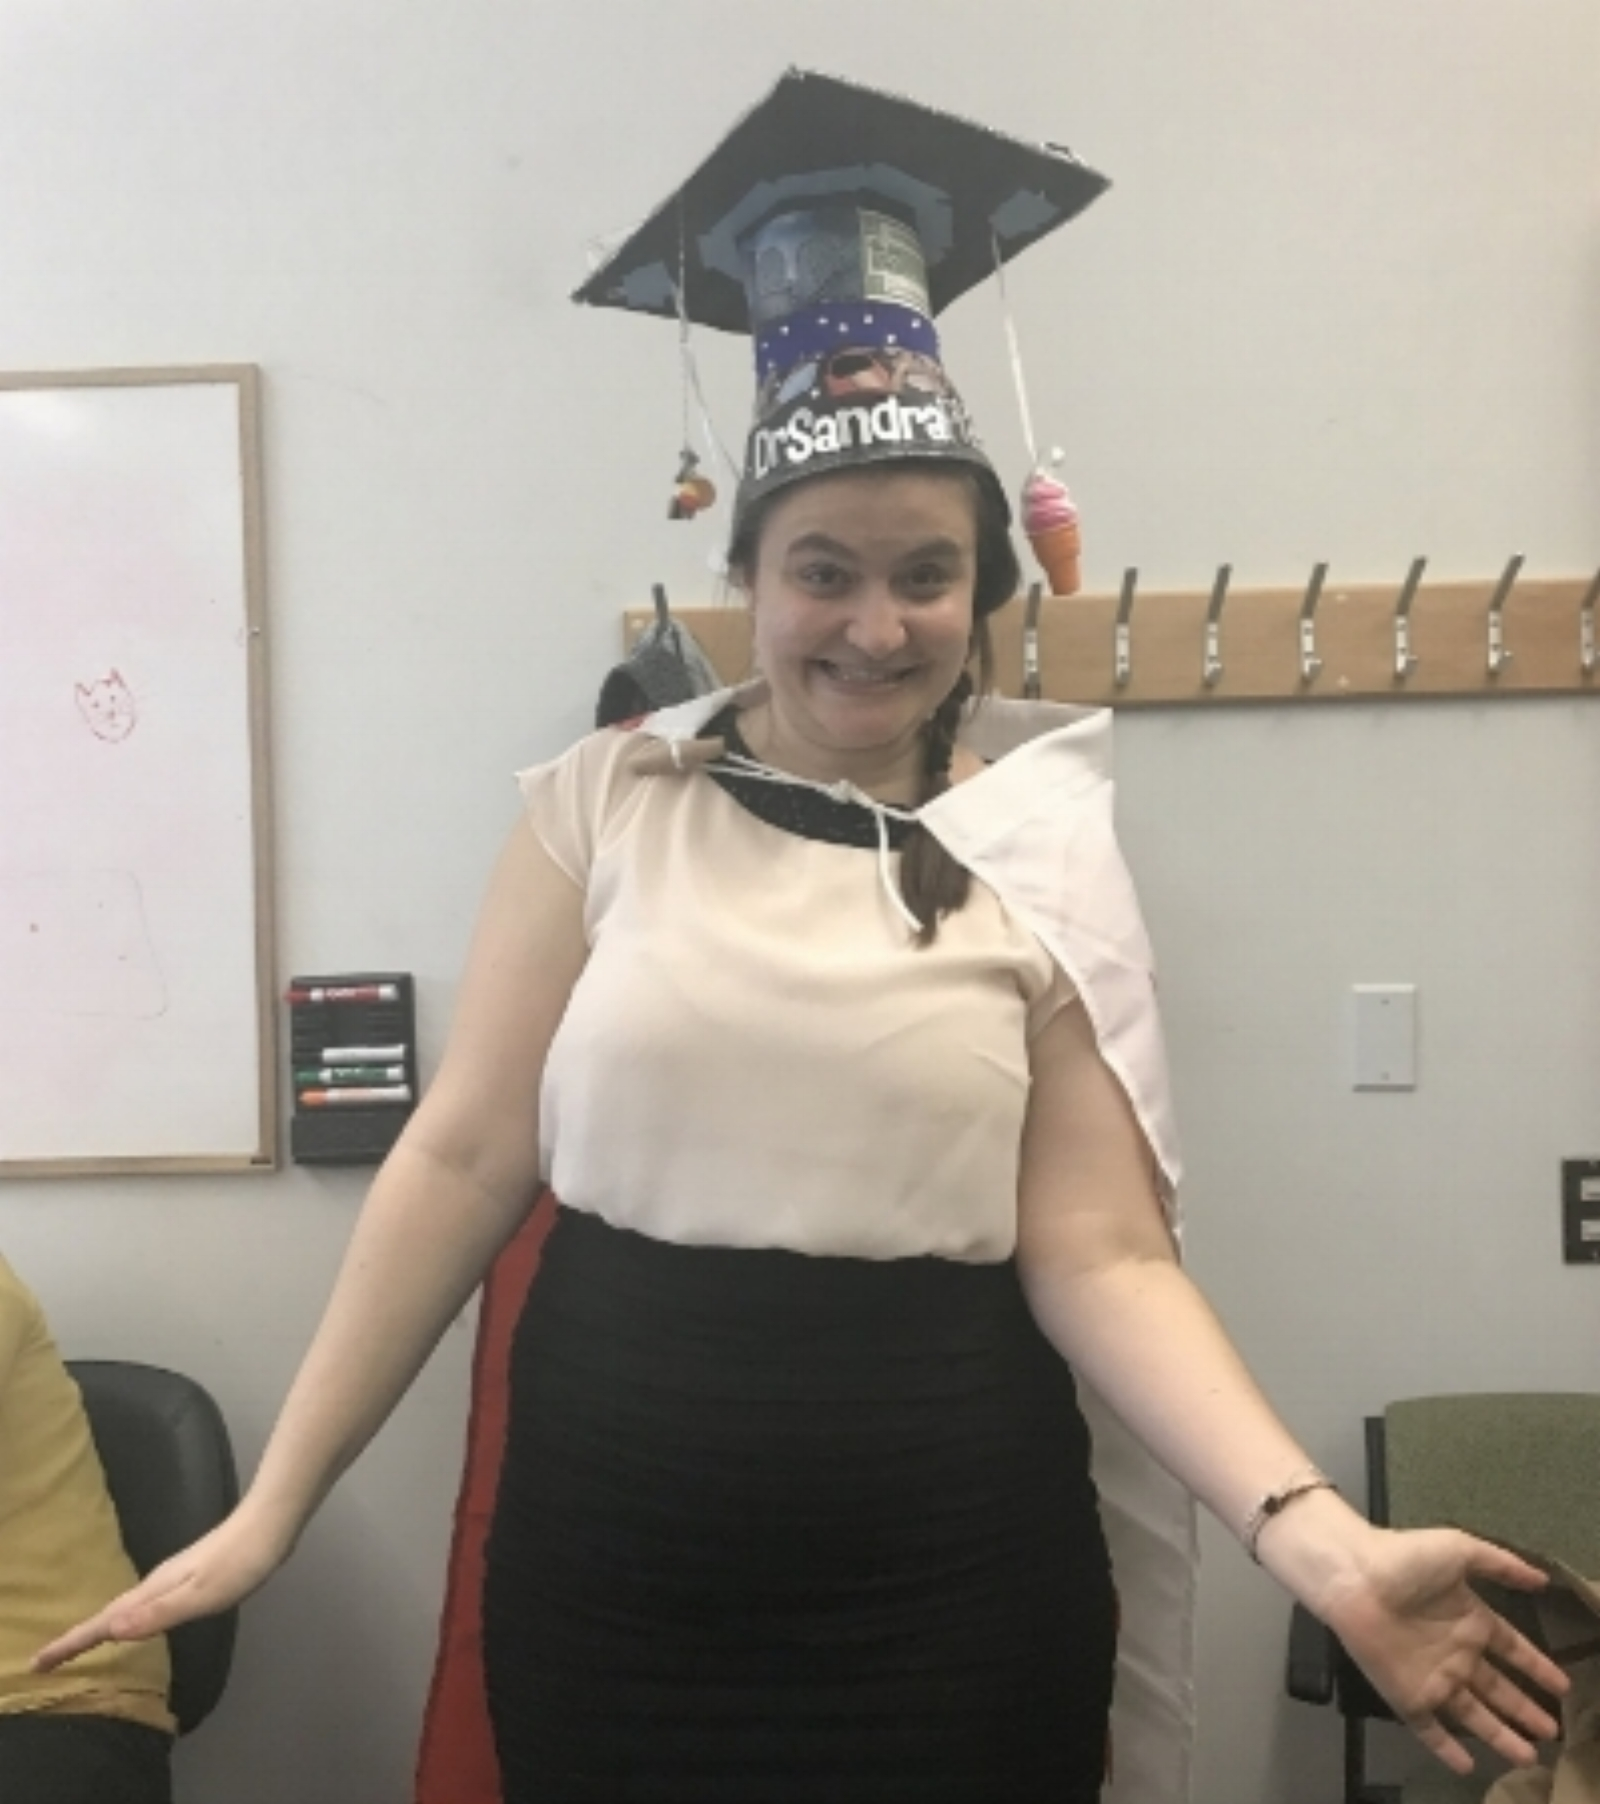 Dr. Sandra! - Sandra is our first PhD student to graduate! And that with excellent performance. Chapeau, Sandra, you really earned it!